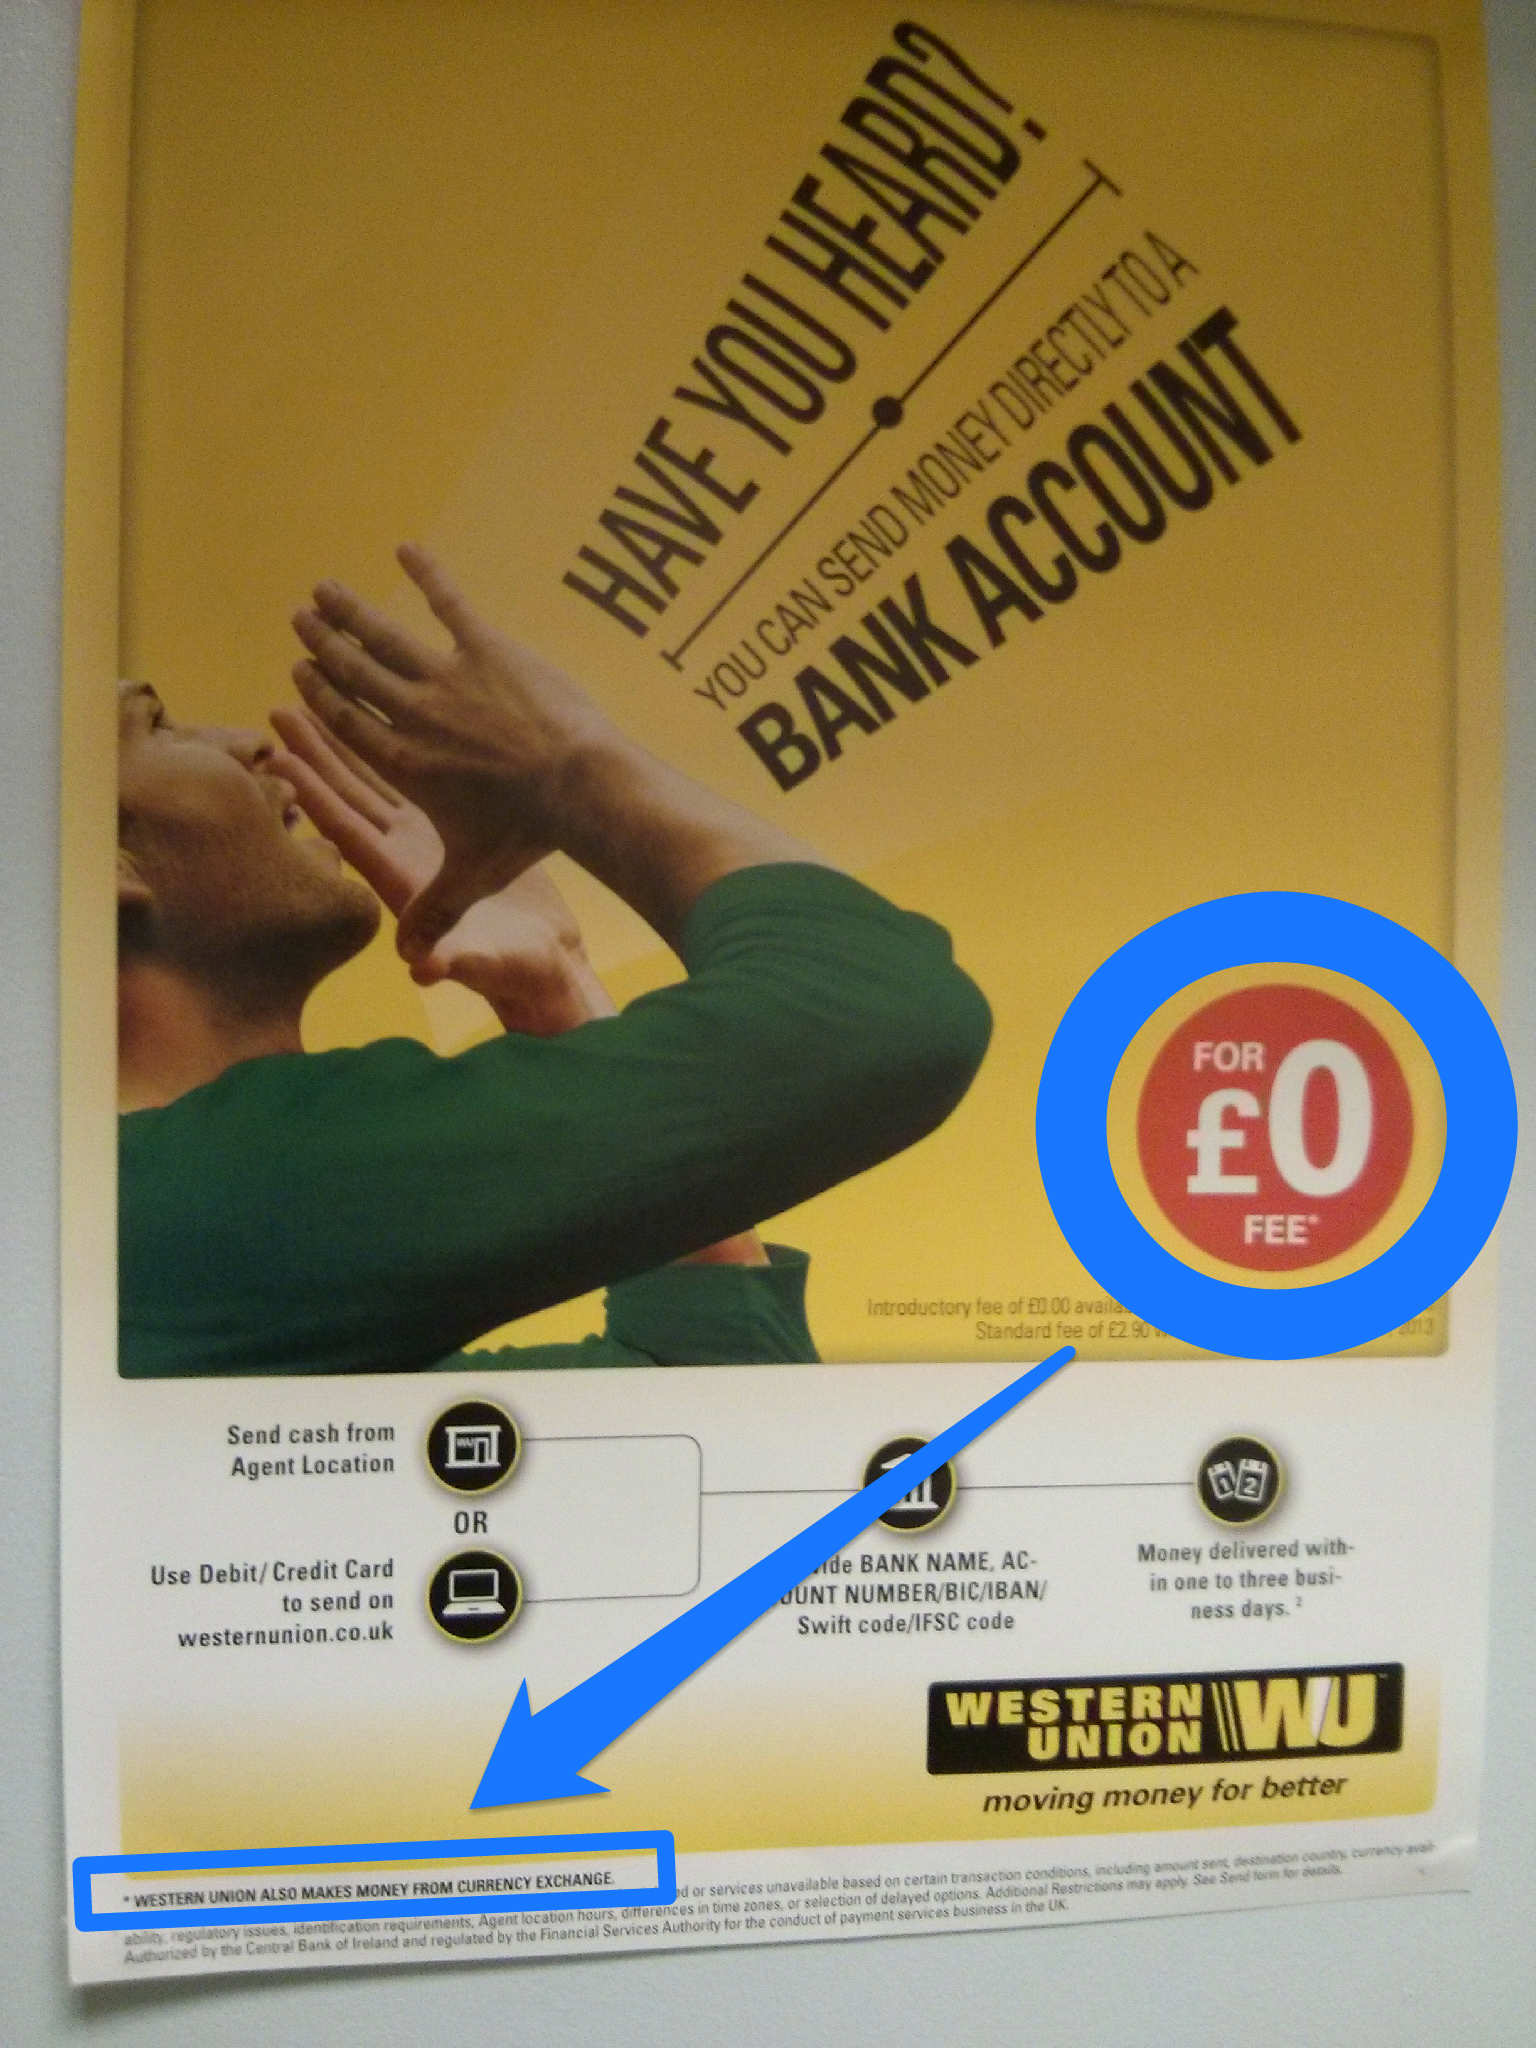 Western Union frequently claim that customers don't pay any